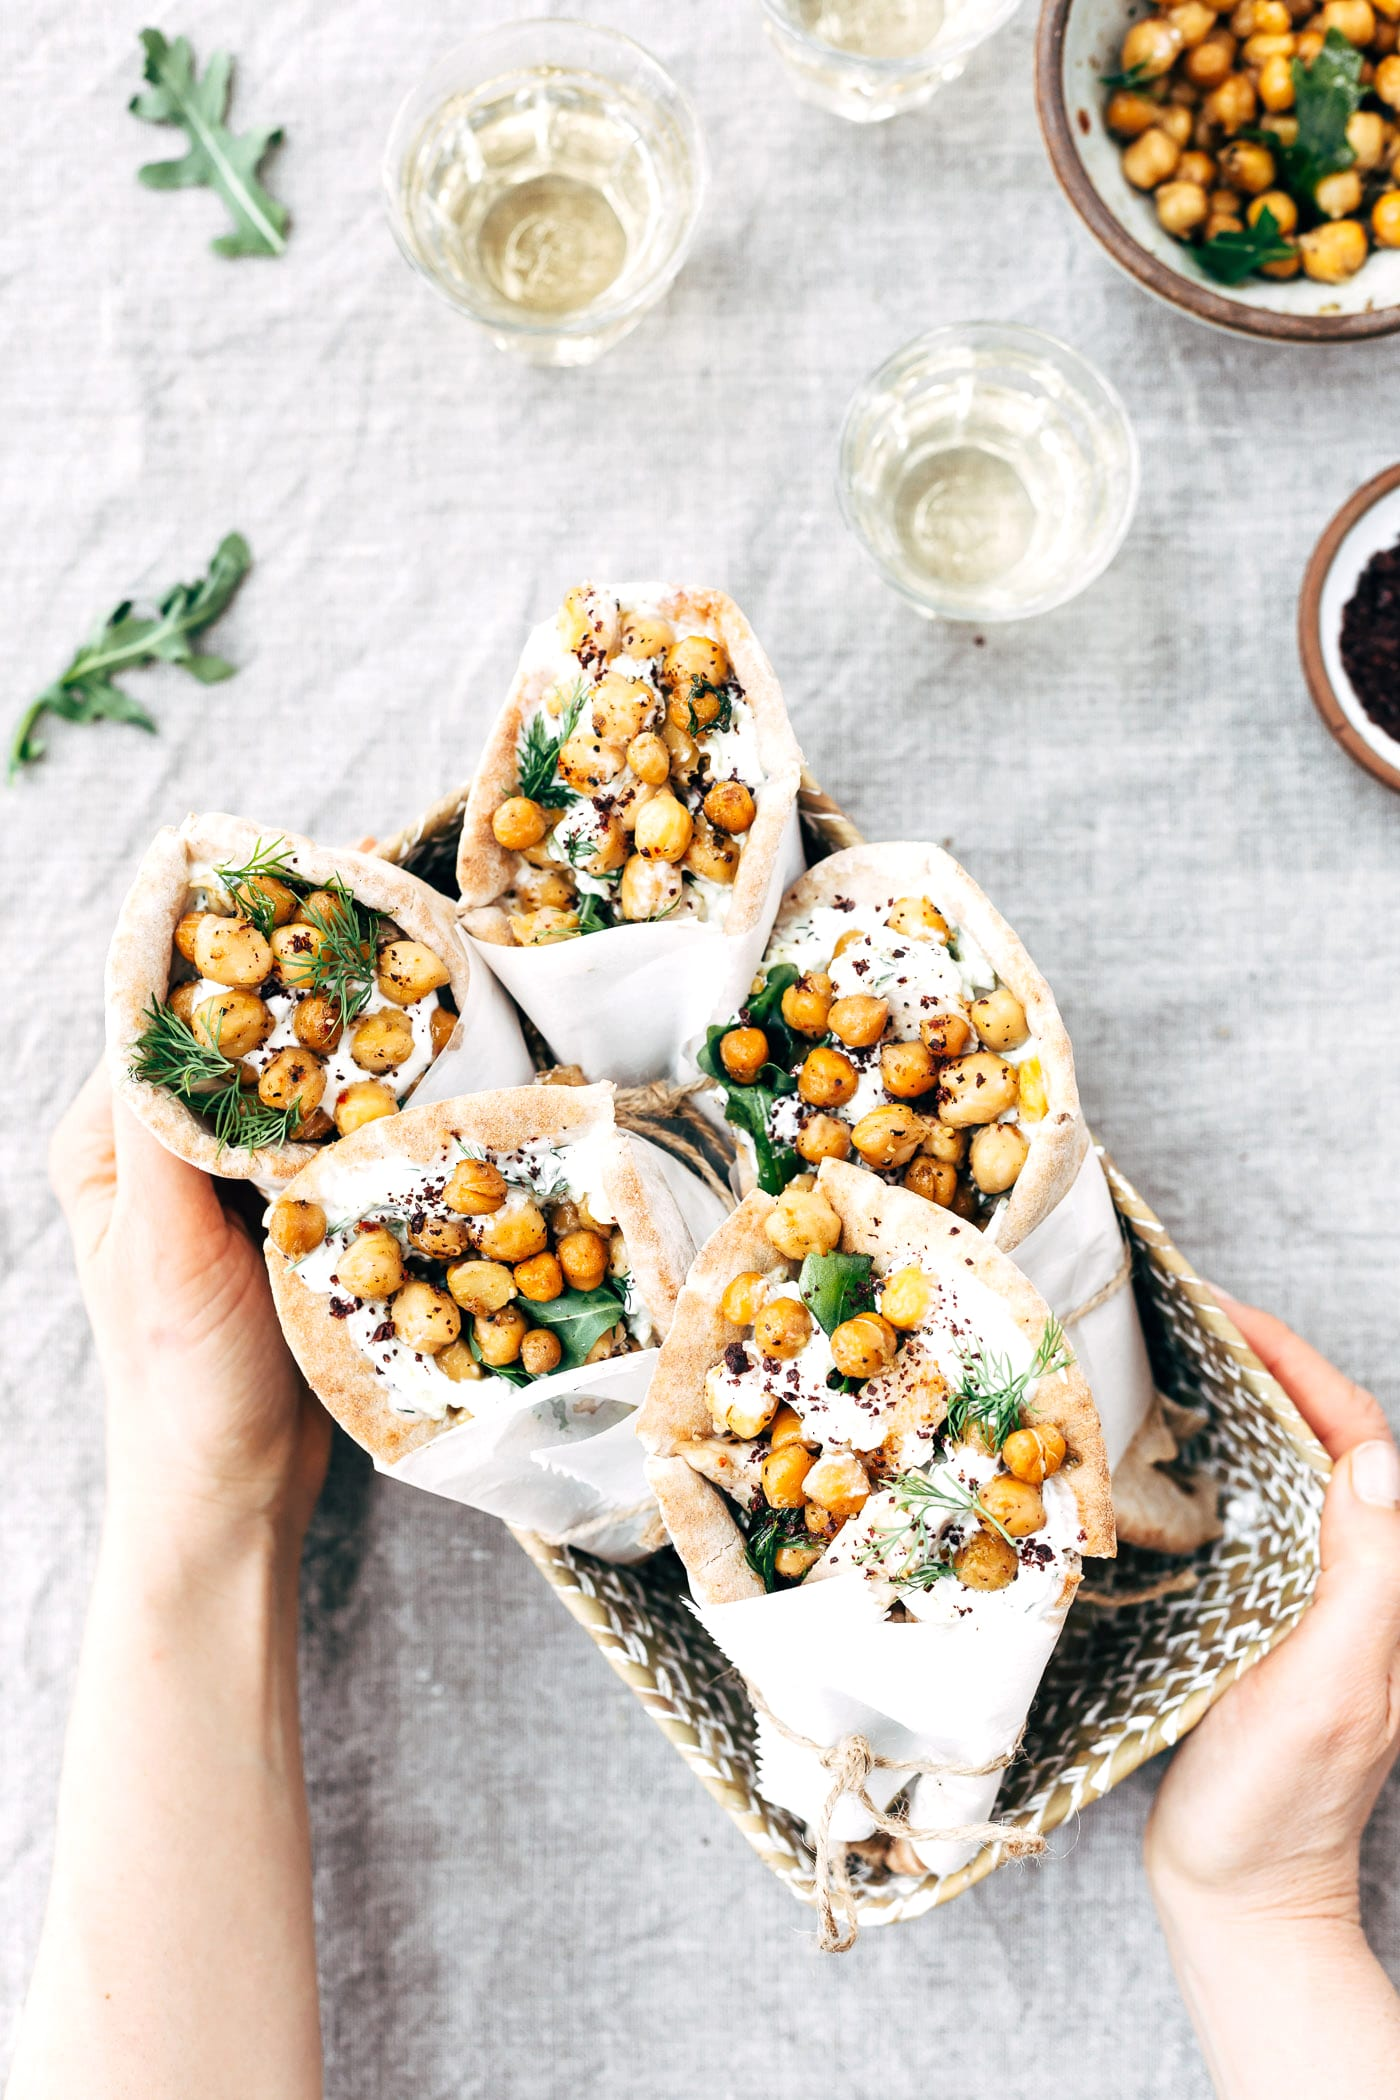 Roasted Chicken Pita Wrap with Crispy Chickpeas and Tzatziki are placed in a basket and photographed from the top view as a woman is serving them.